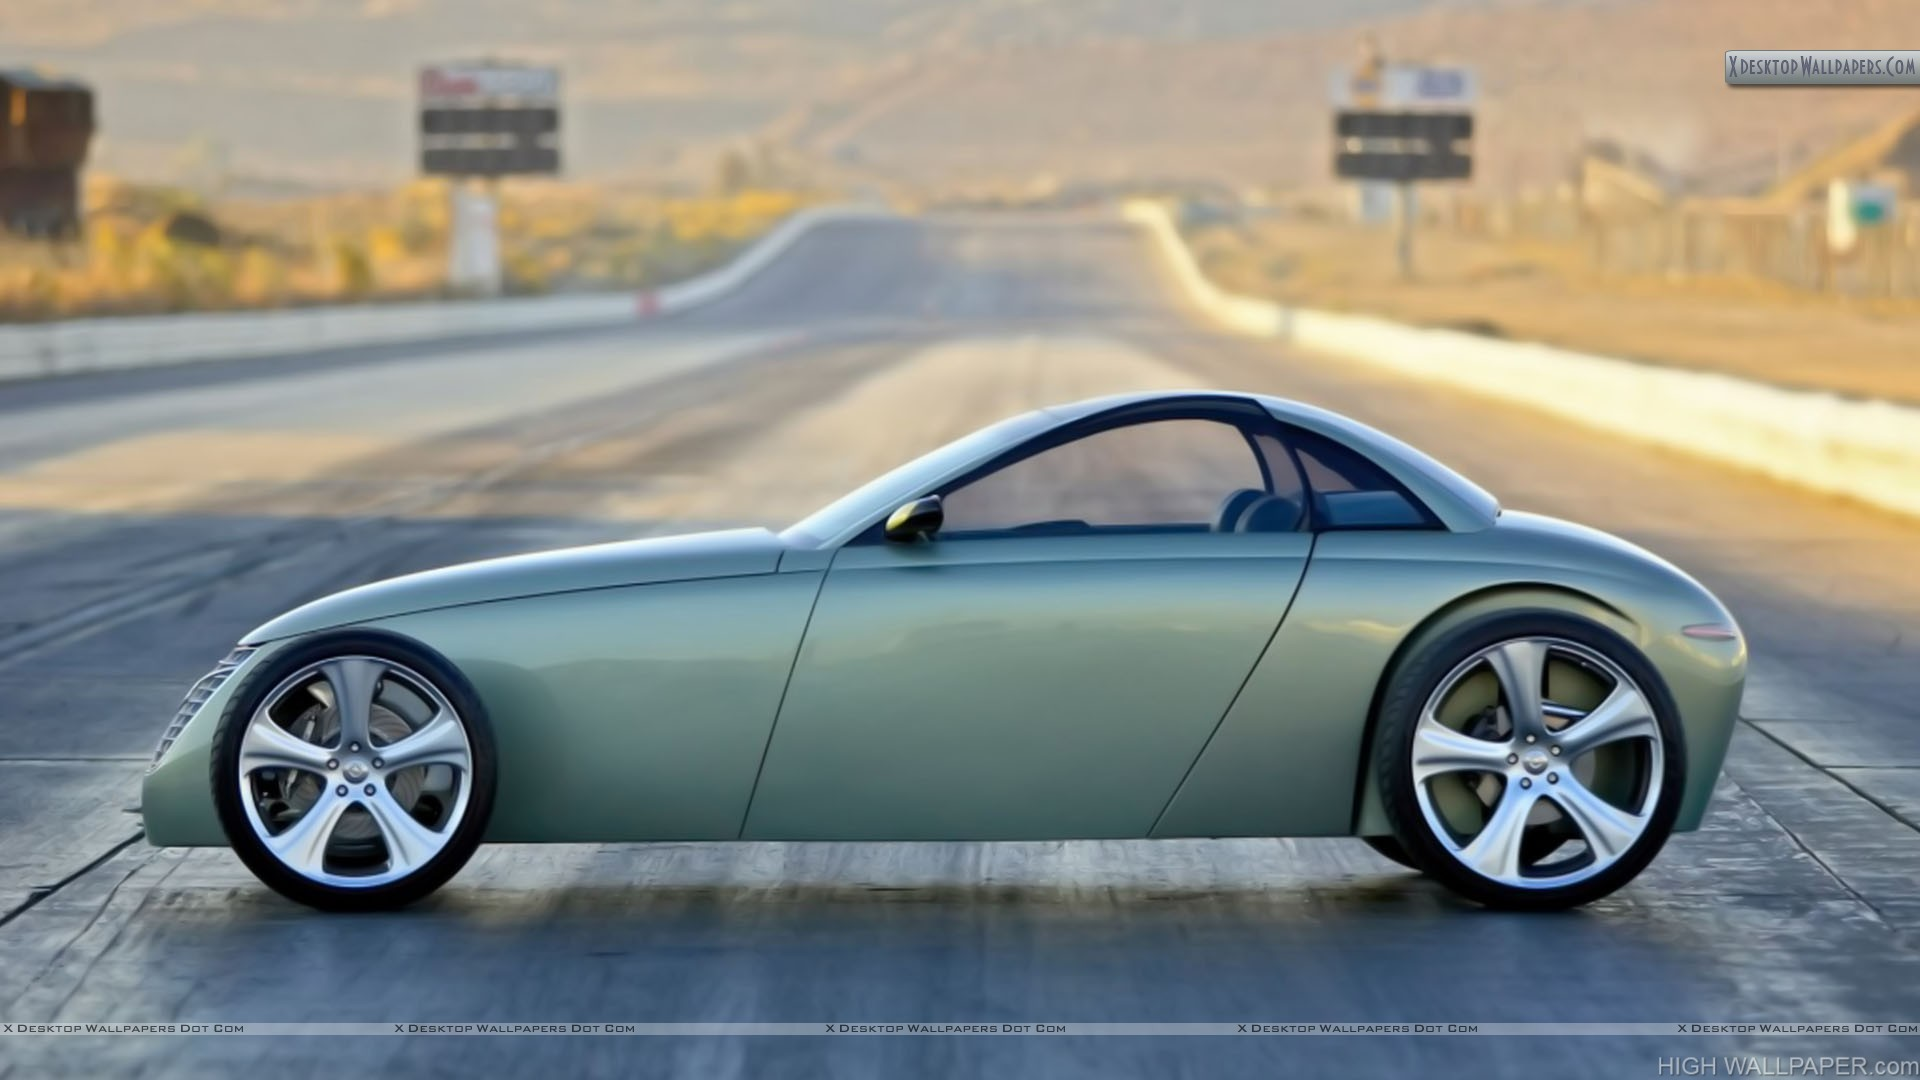 Volvo T6 Roadster Hot Rod Concept Car 2005 Side View